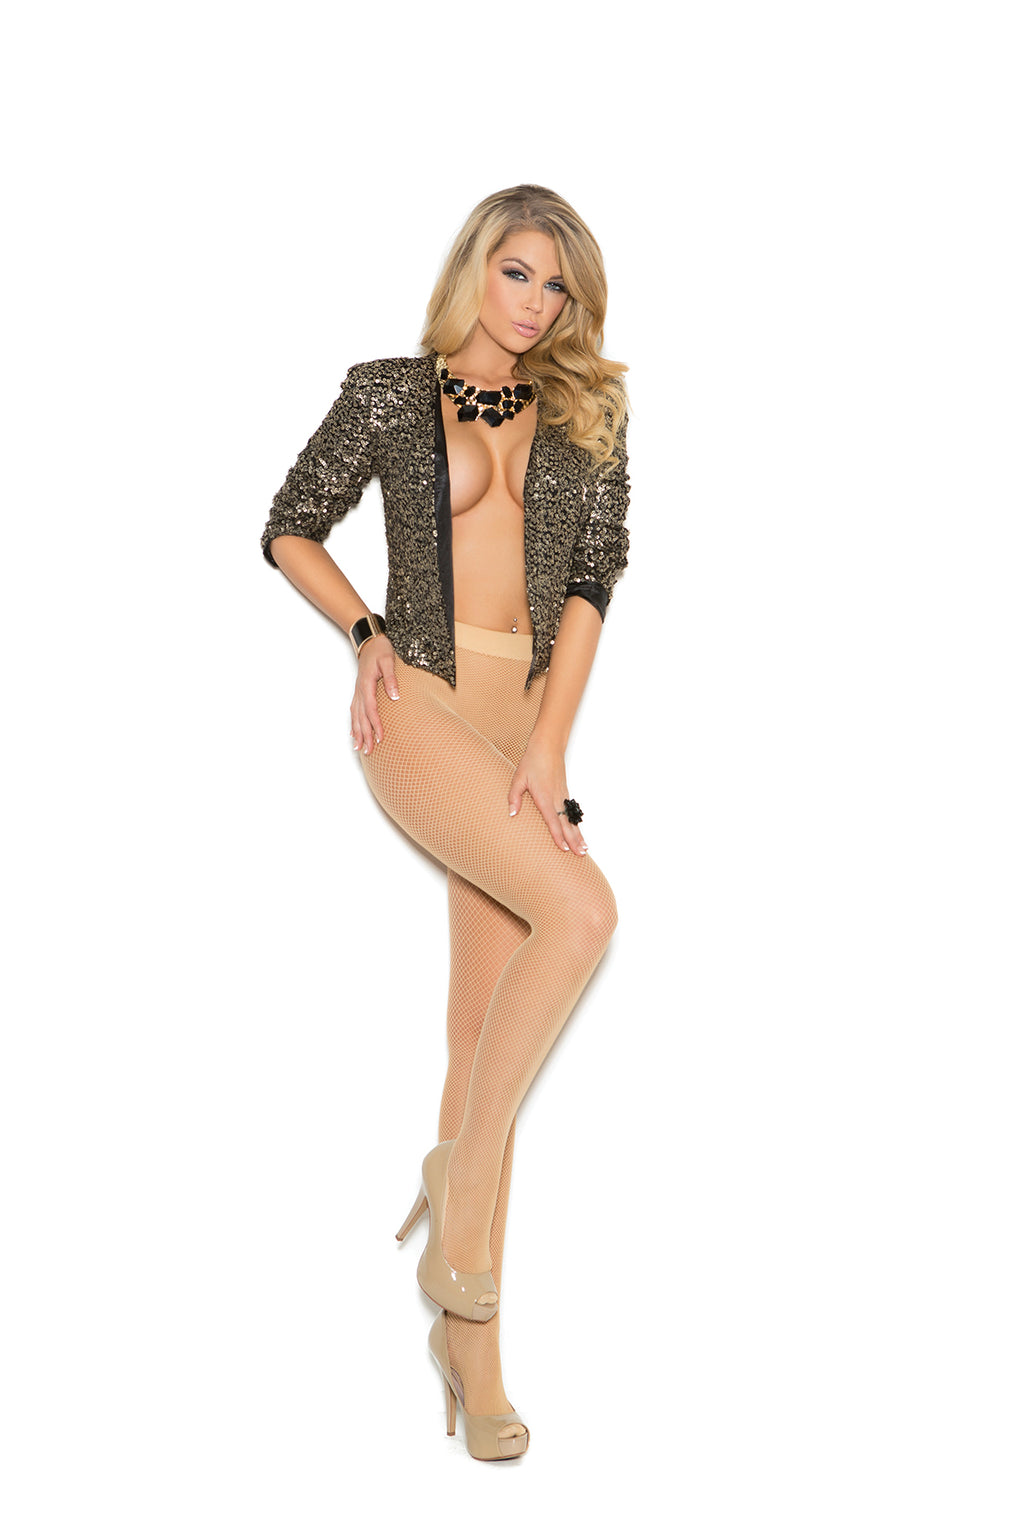 Elegant Moments 1156 Nude Fishnet Tights with Padded Foot